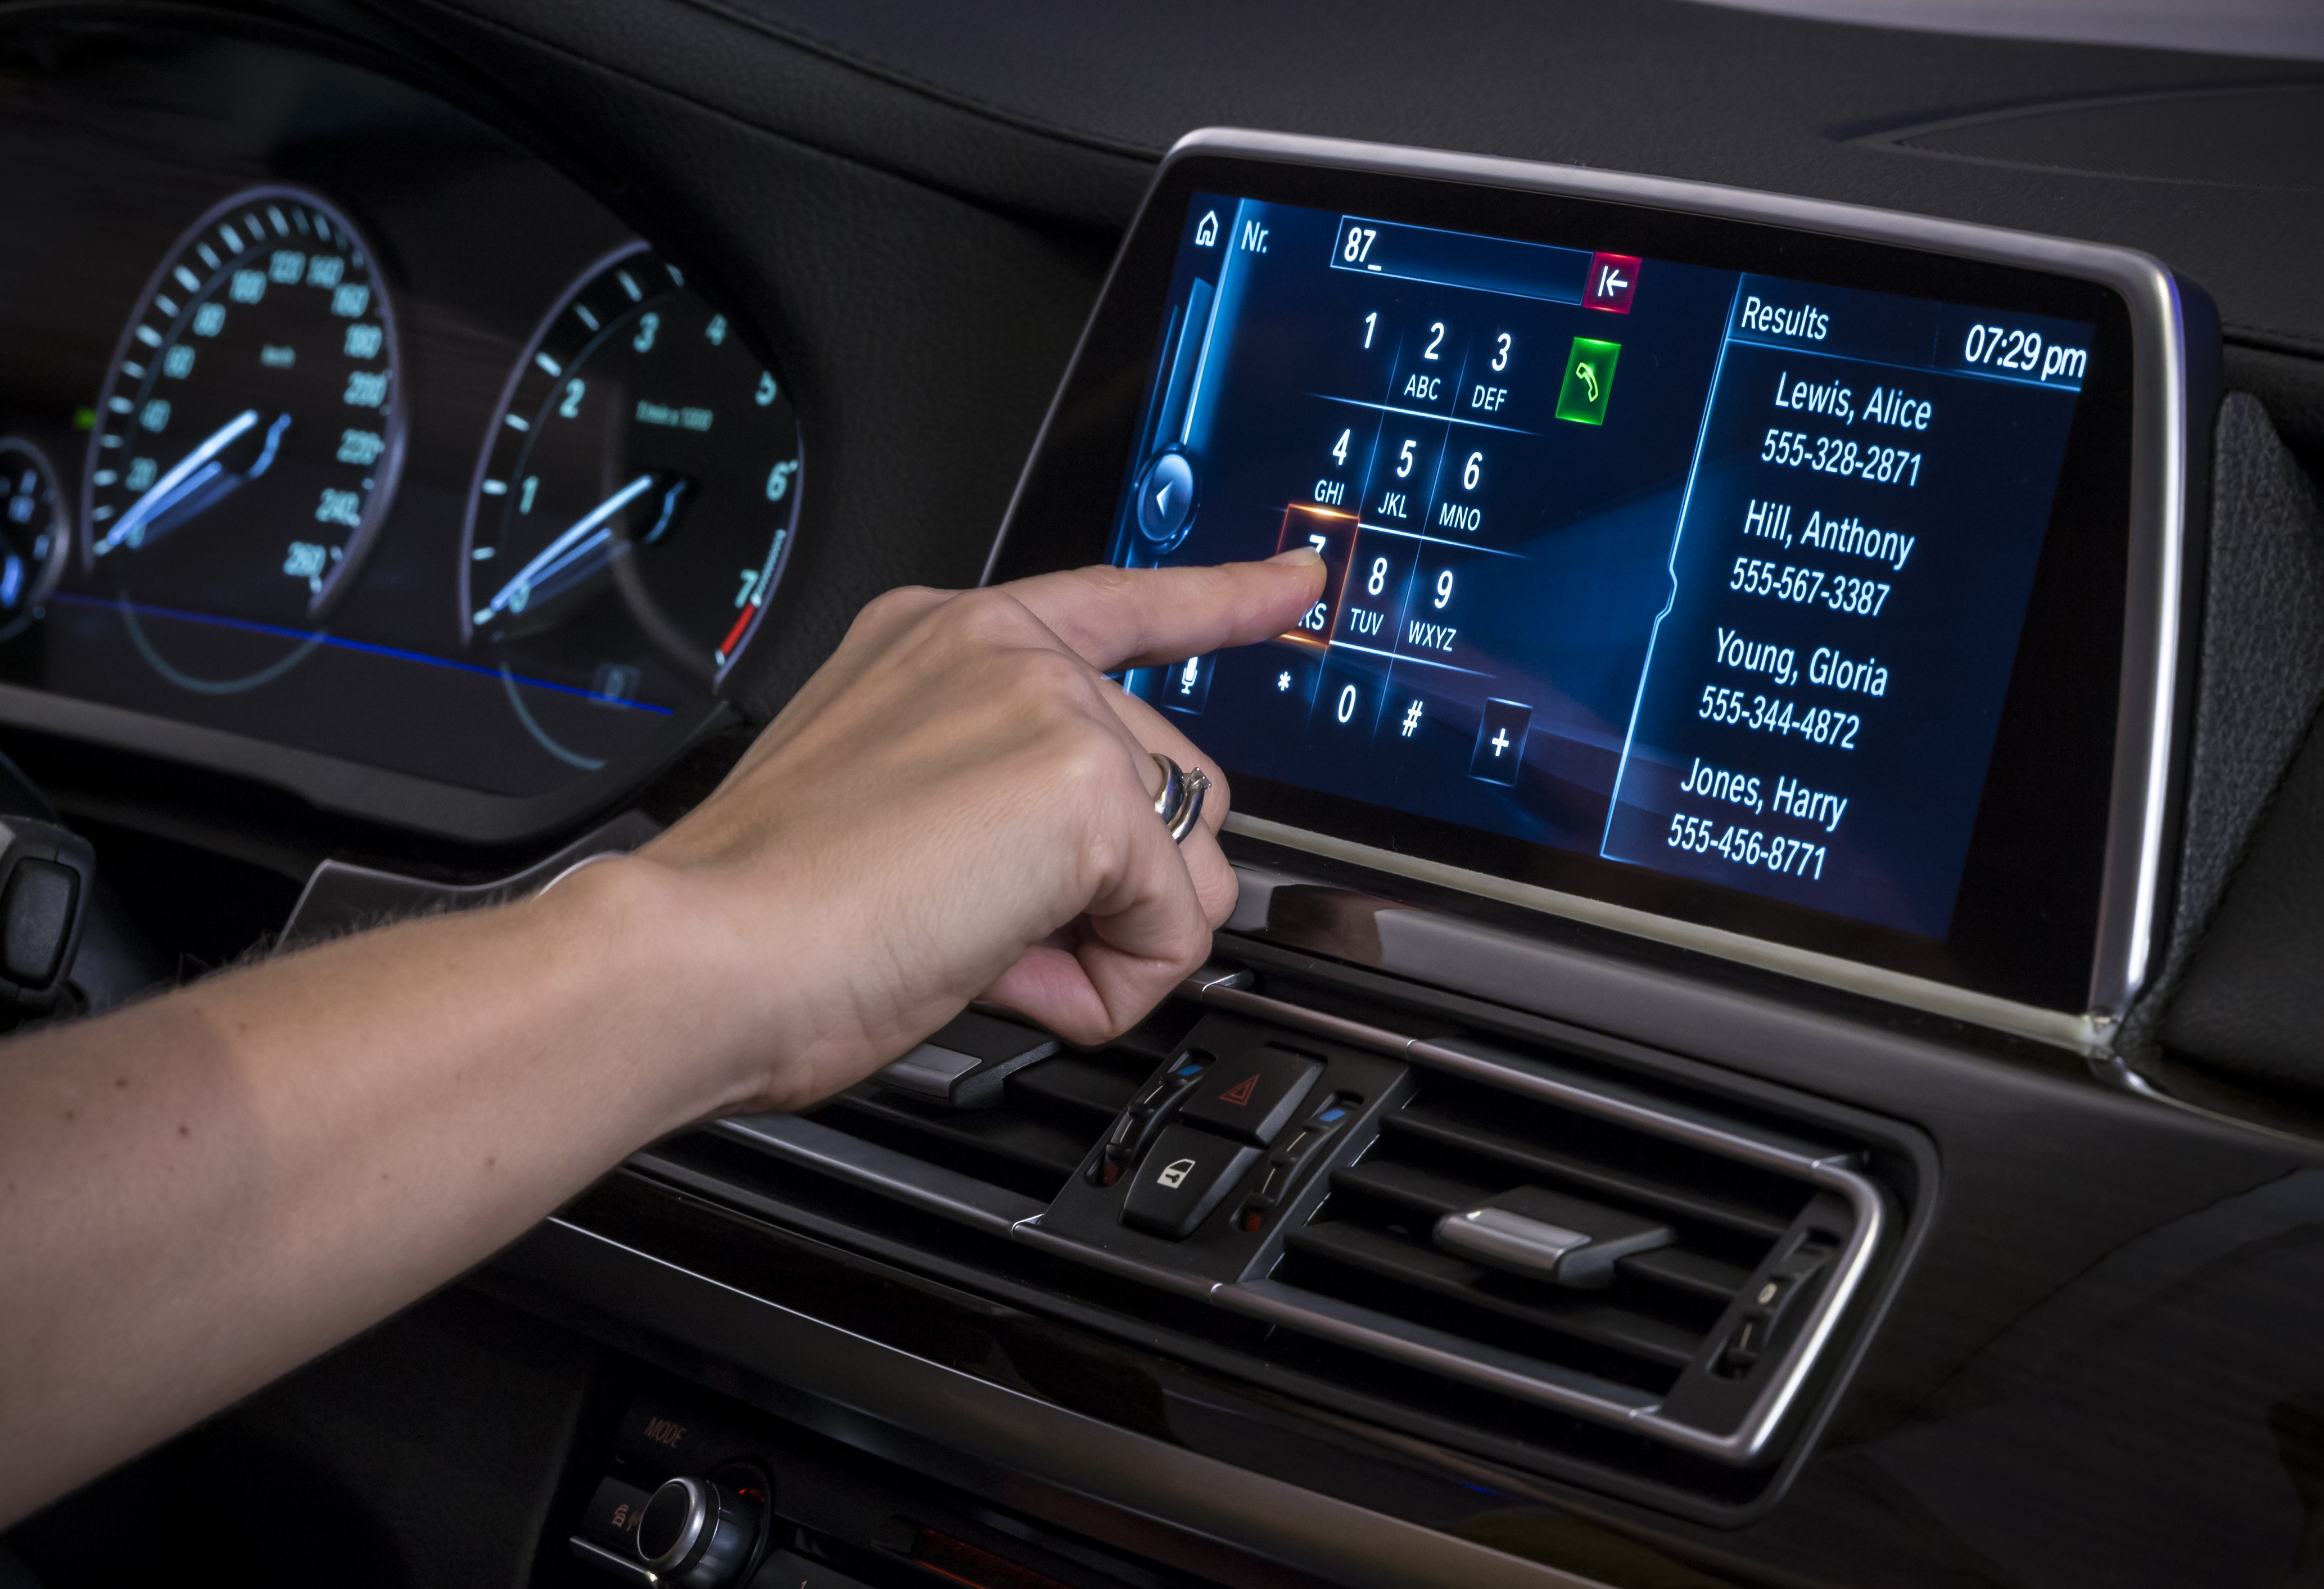 Next Gen Idrive With Gesture Control And Touchscreen